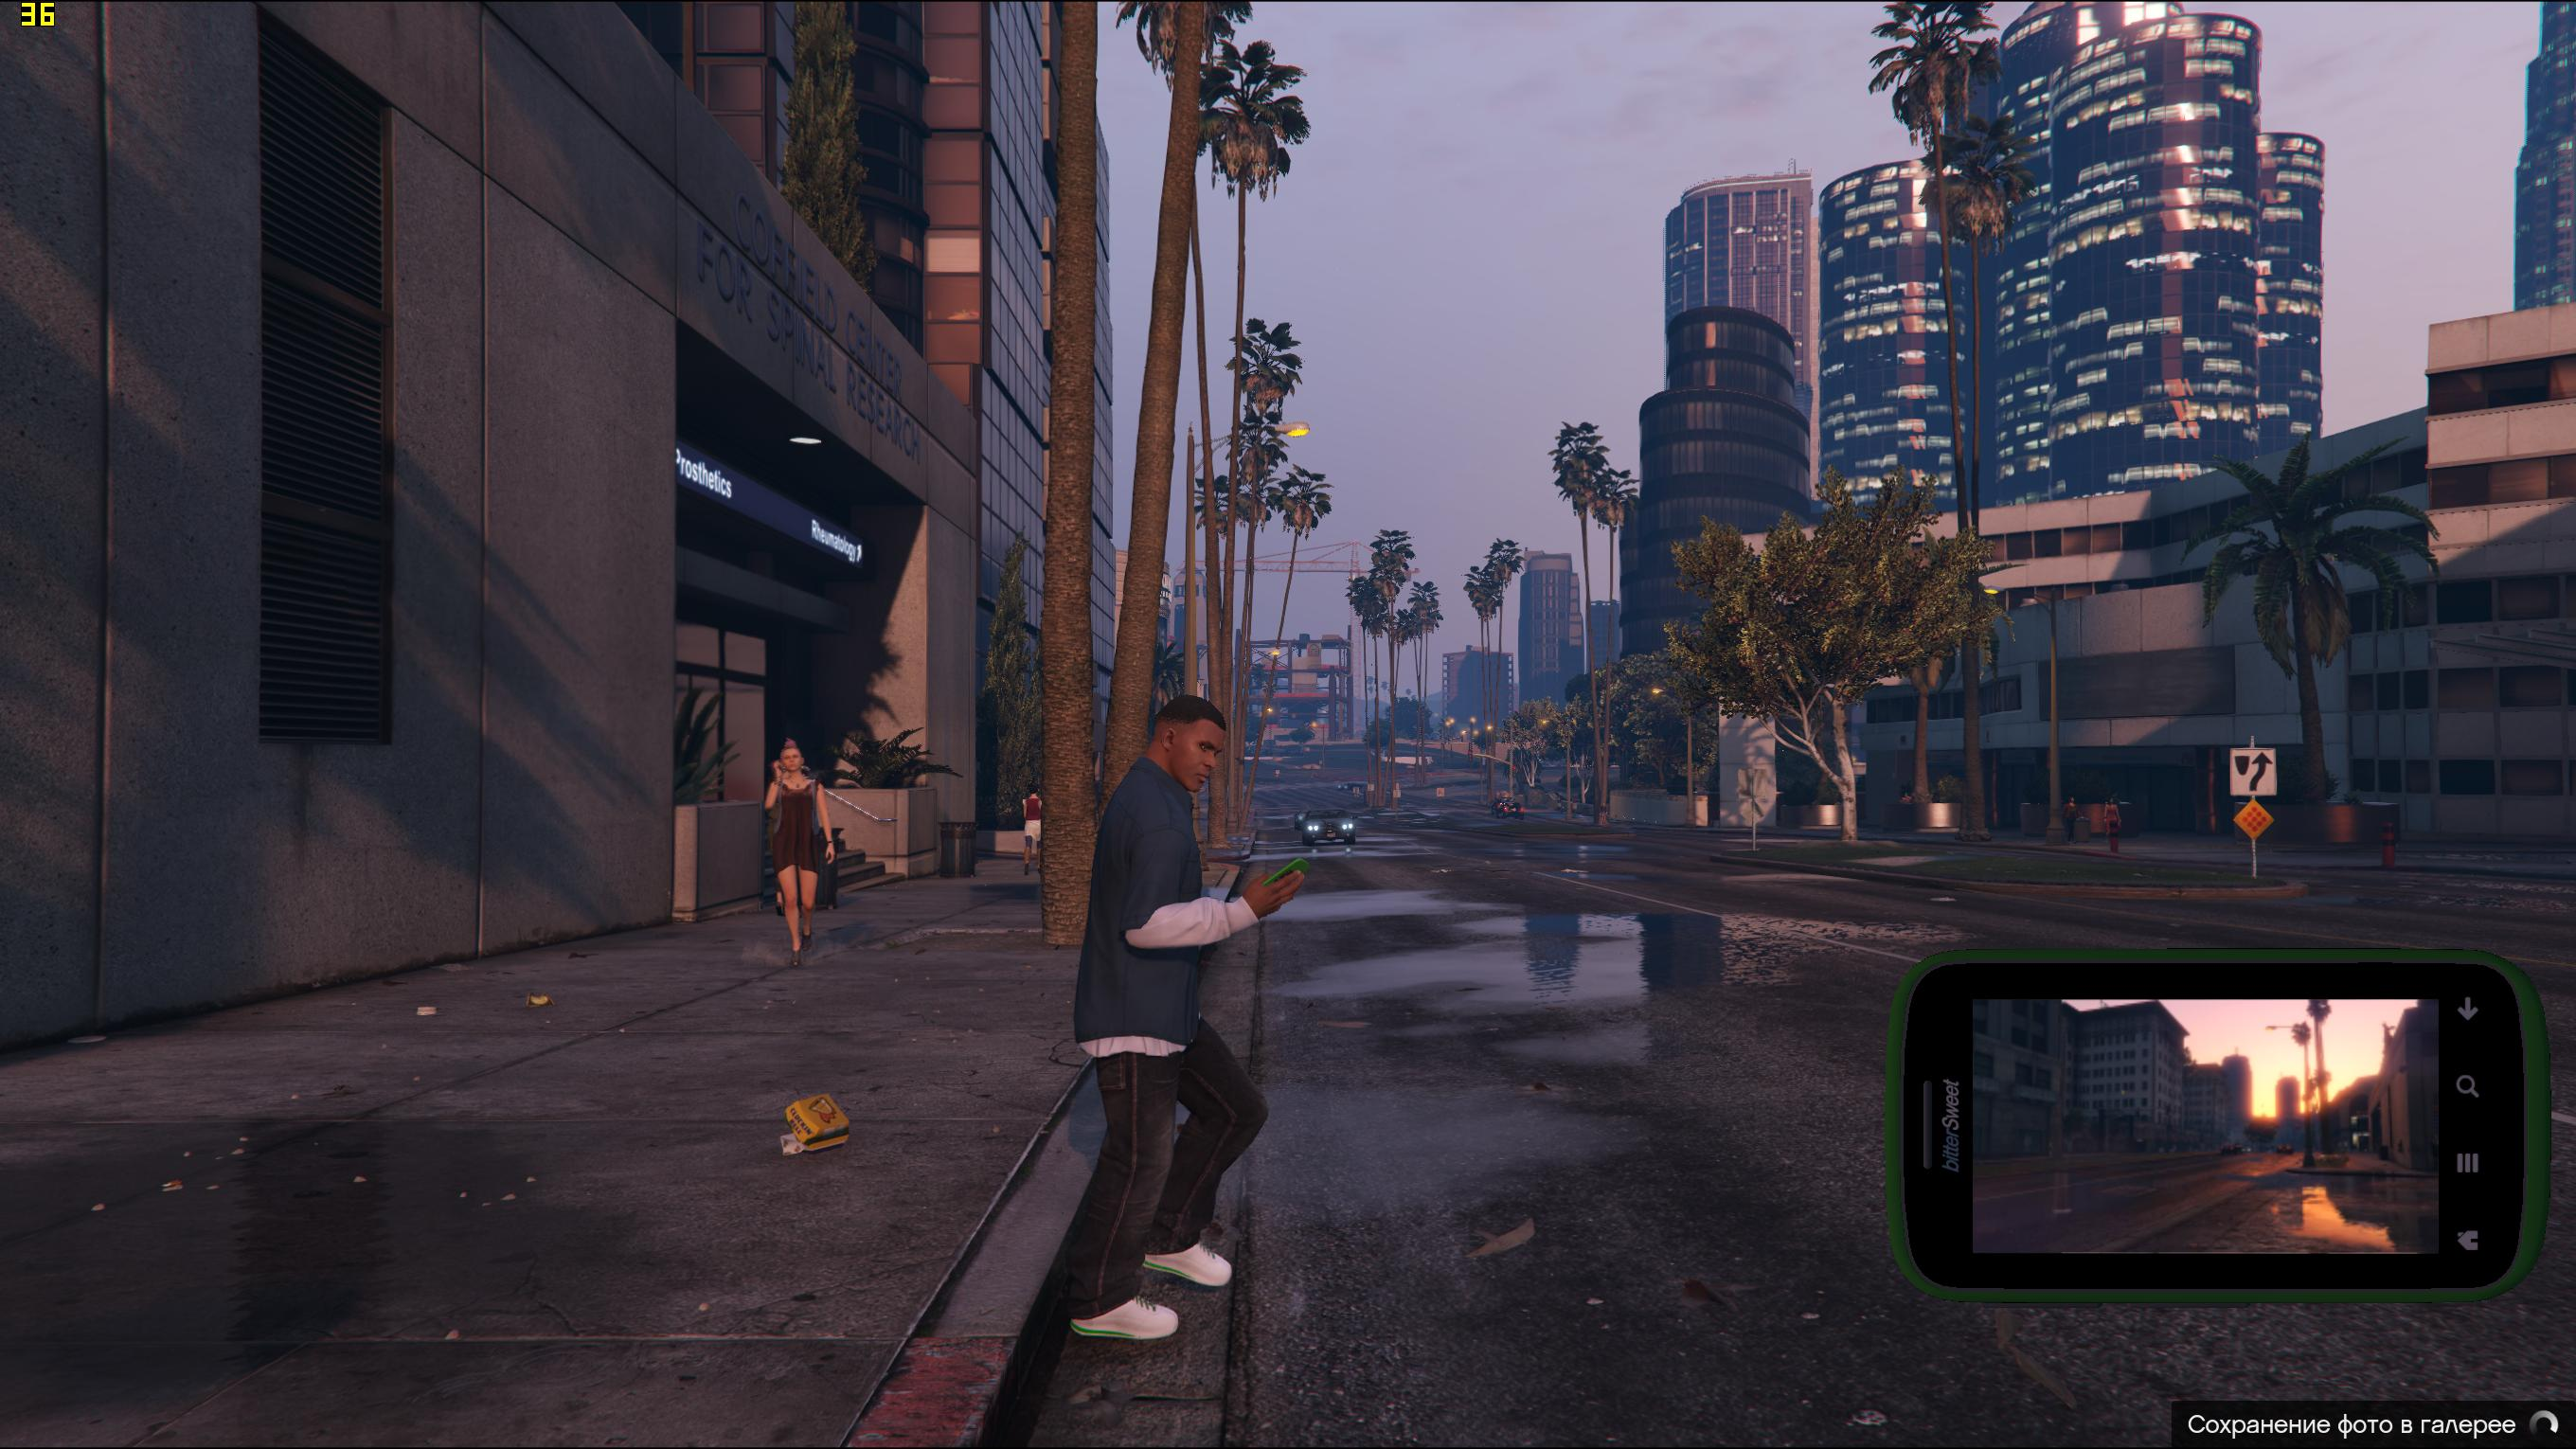 Fotos del gta 5 naked thumbs